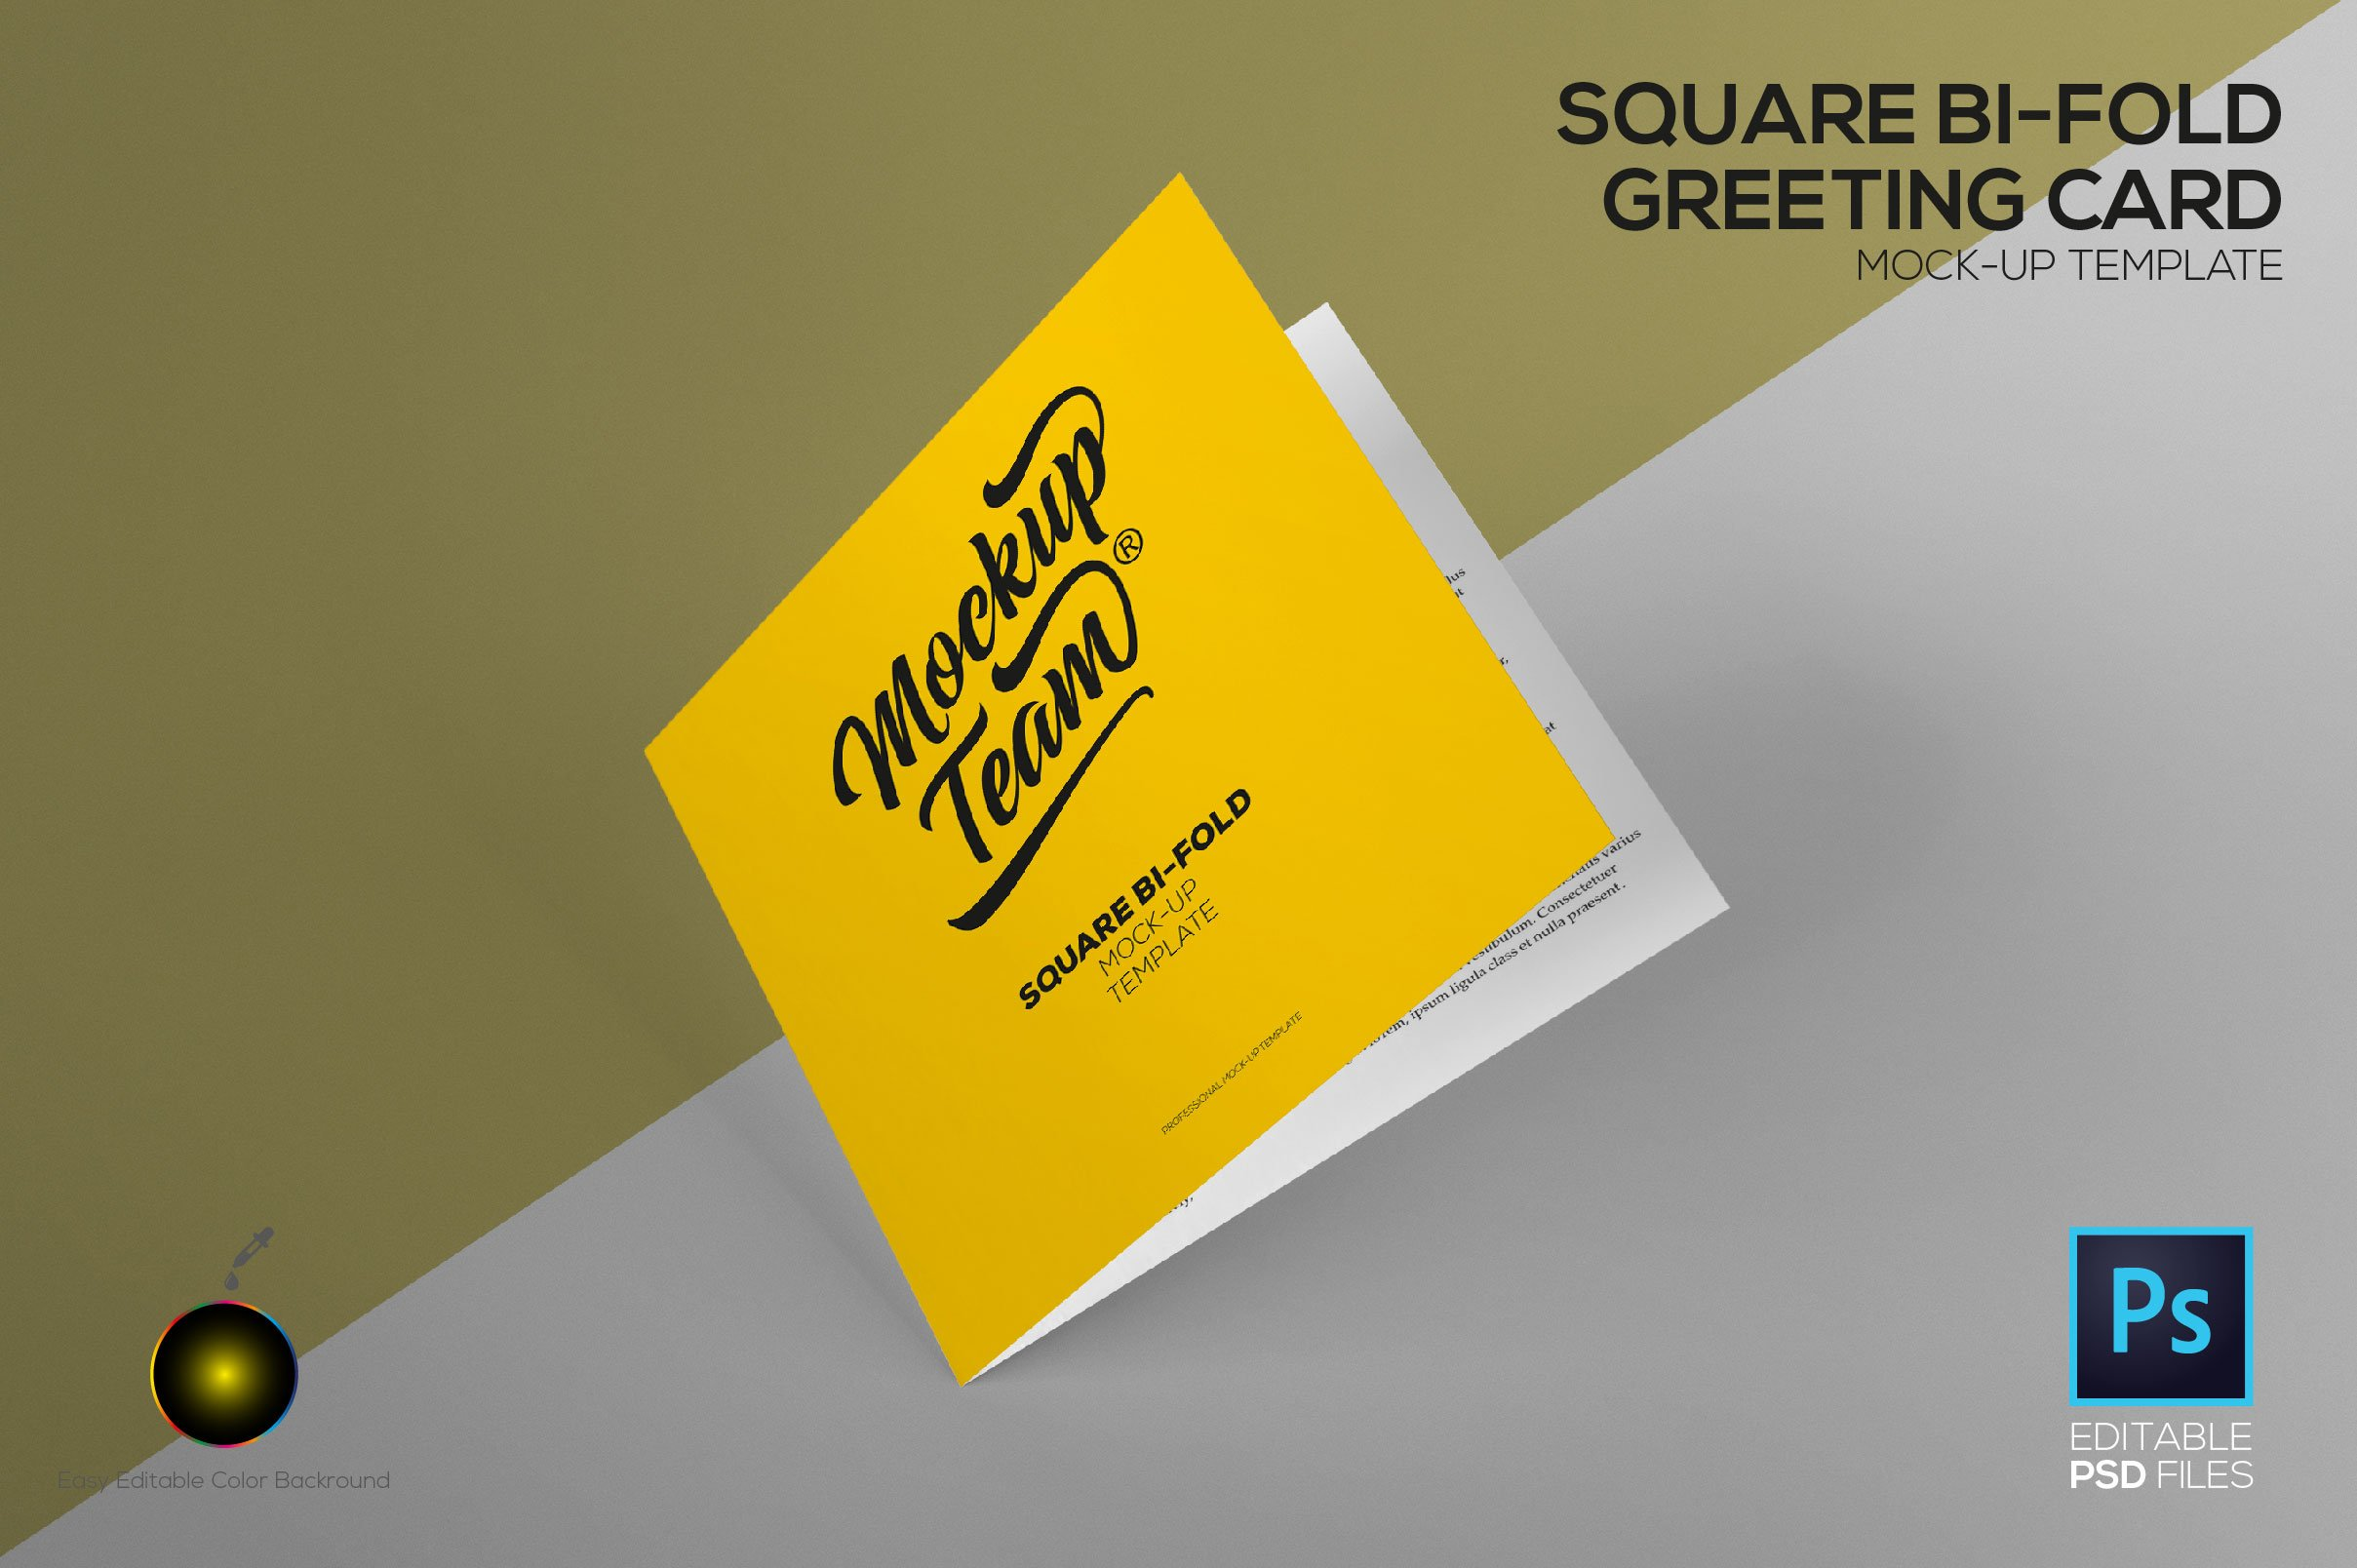 Square greeting card mock up temp product mockups creative market kristyandbryce Image collections